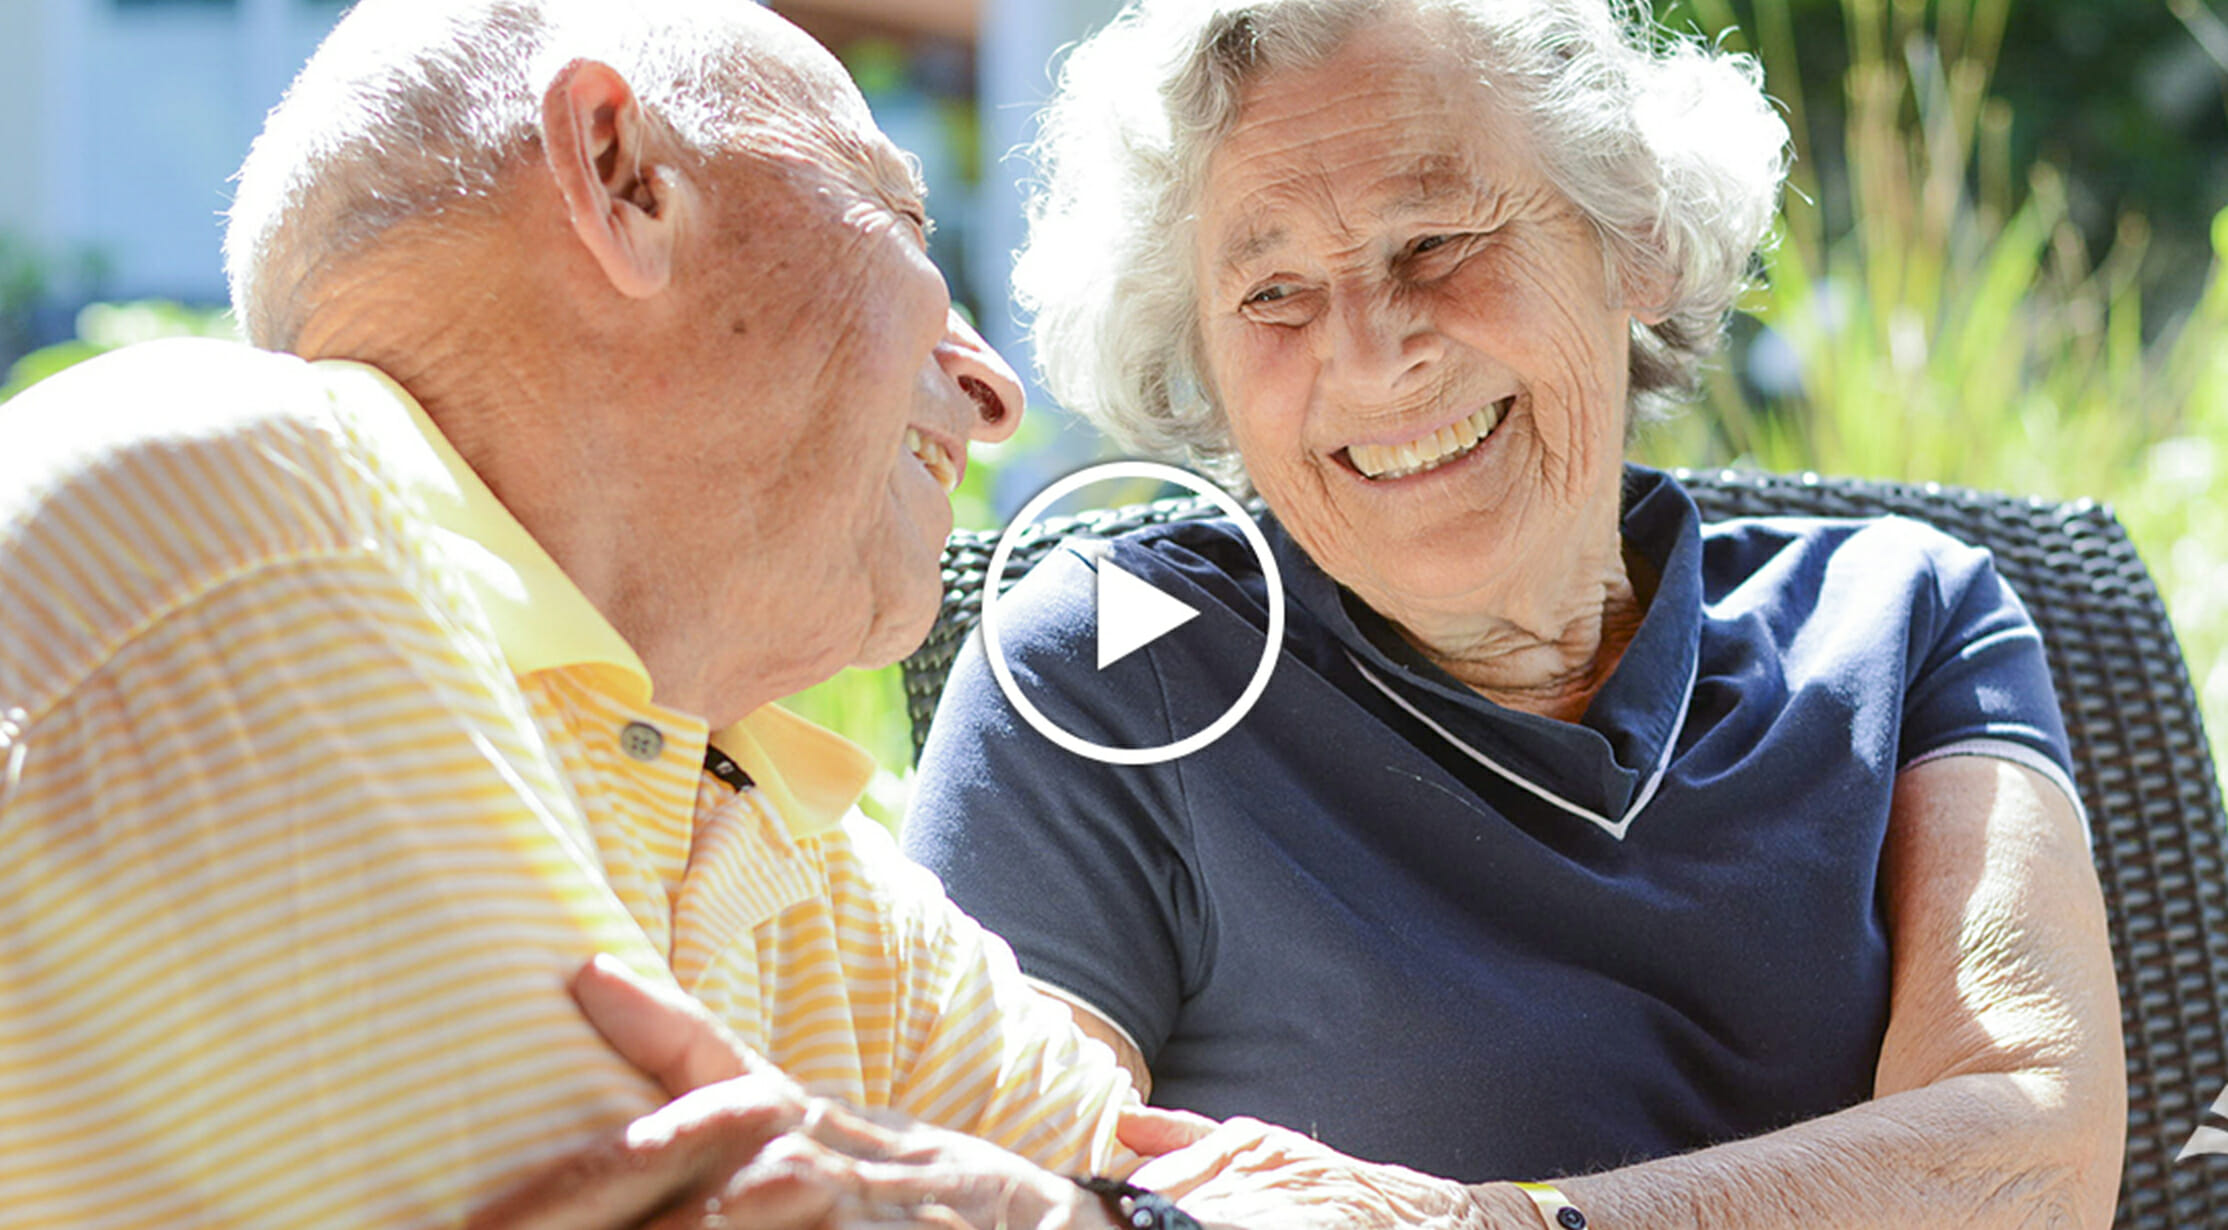 Independent living resident with Memory-Impaired spouse enjoying time together in Serenity Gardens, continuum of care